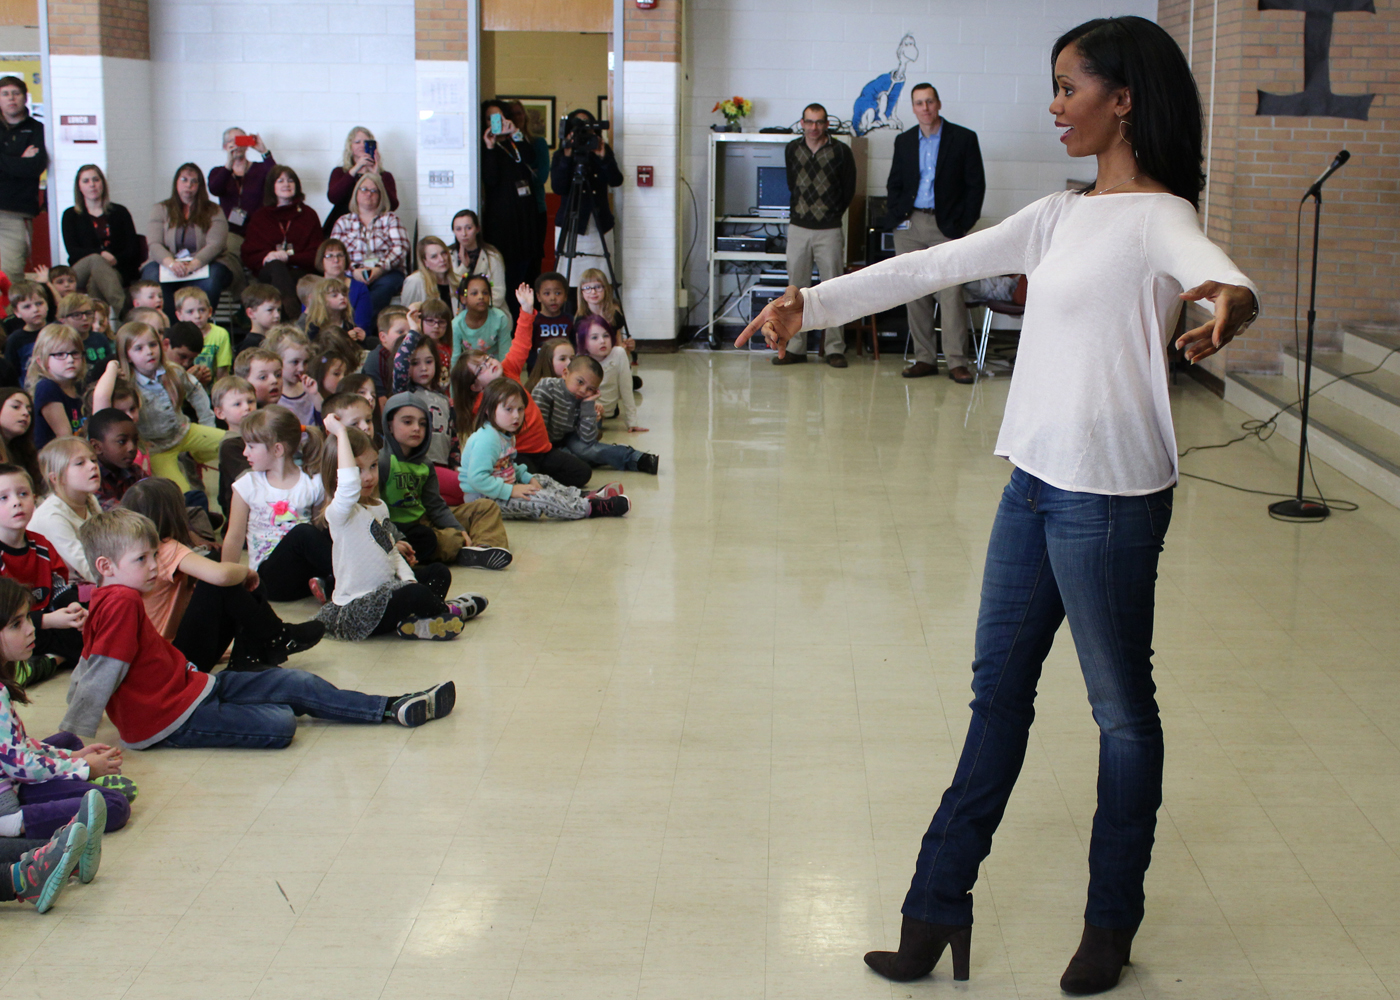 Now-retired ballerina Aesha Ash gamely performed chaînés turns in her high-heeled boots when the students requested  a dance move. Provided photo